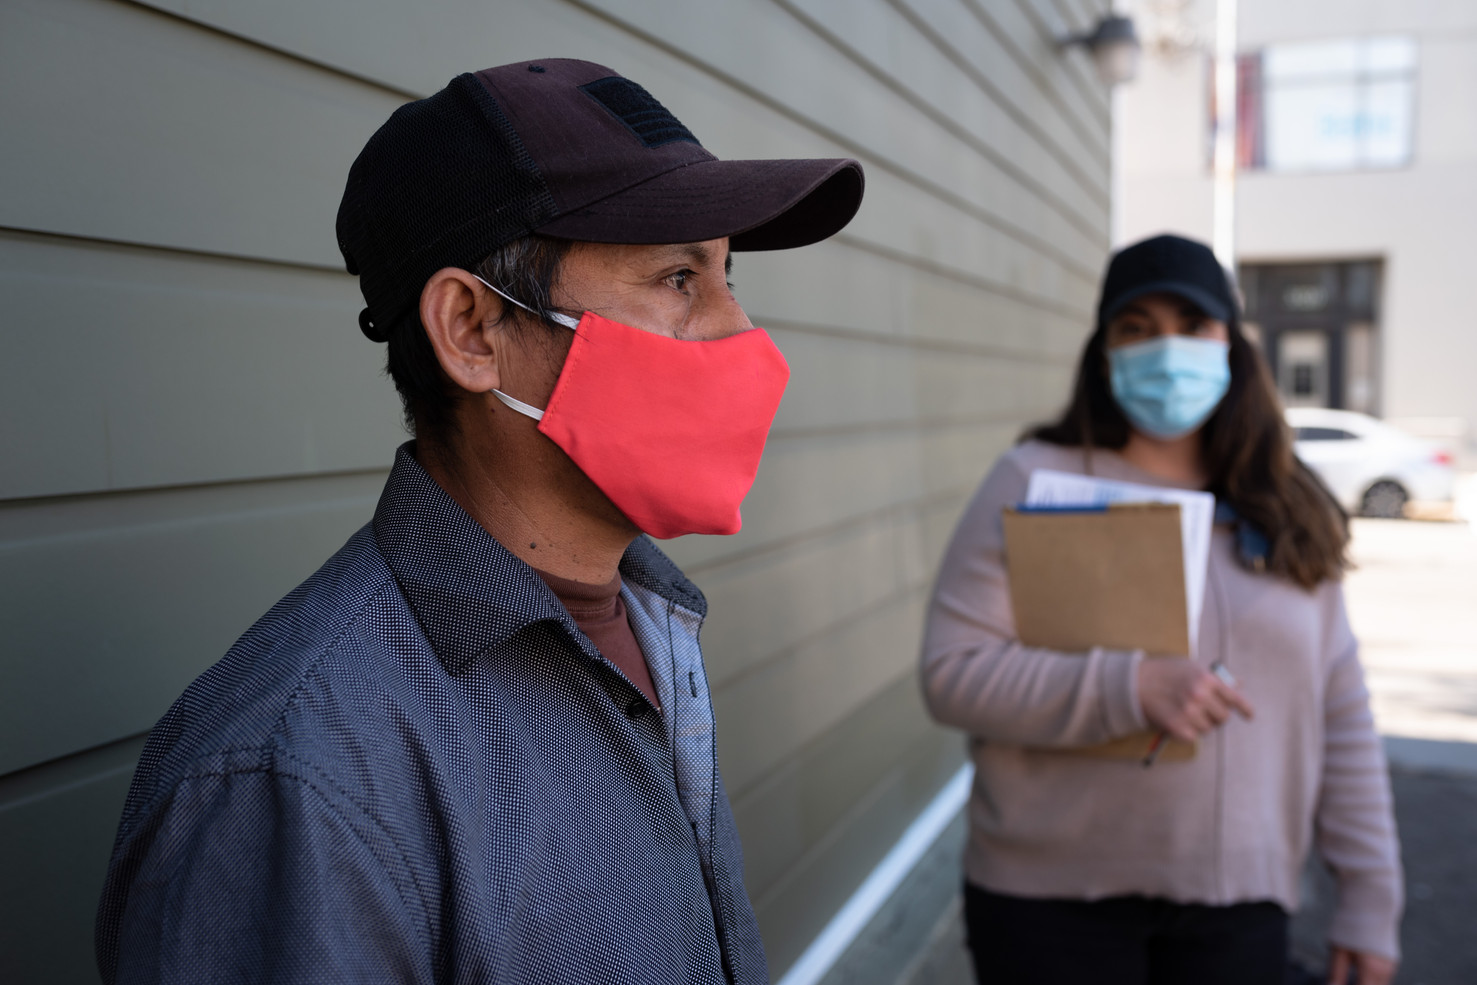 Miguel Garcia Hidalgo, a restaurant cook, caught COVID-19 in the beginning of the pandemic and was eventually furloughed as restuarants shut down. His five roommates including two children all tested postiive and relied on Unidos En Salud assistance for quarantine in hotel rooms and regular food delivery.